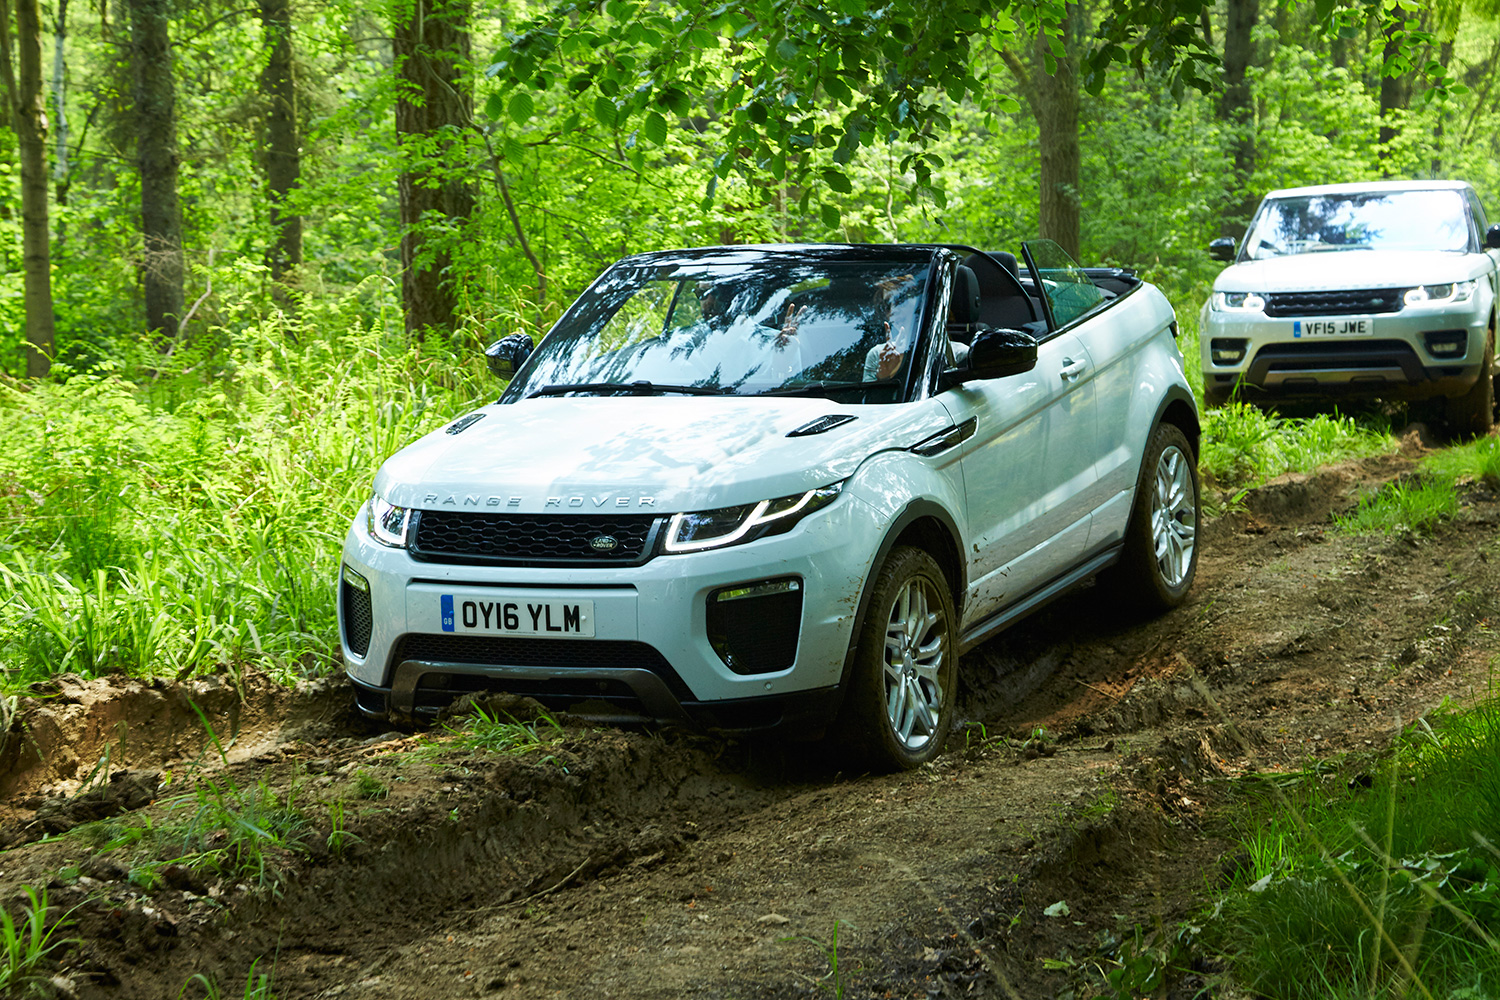 Me driving the Evoque Convertible down a muddy track. You can see the car's low clearance; the front fender is scooping up some mud.